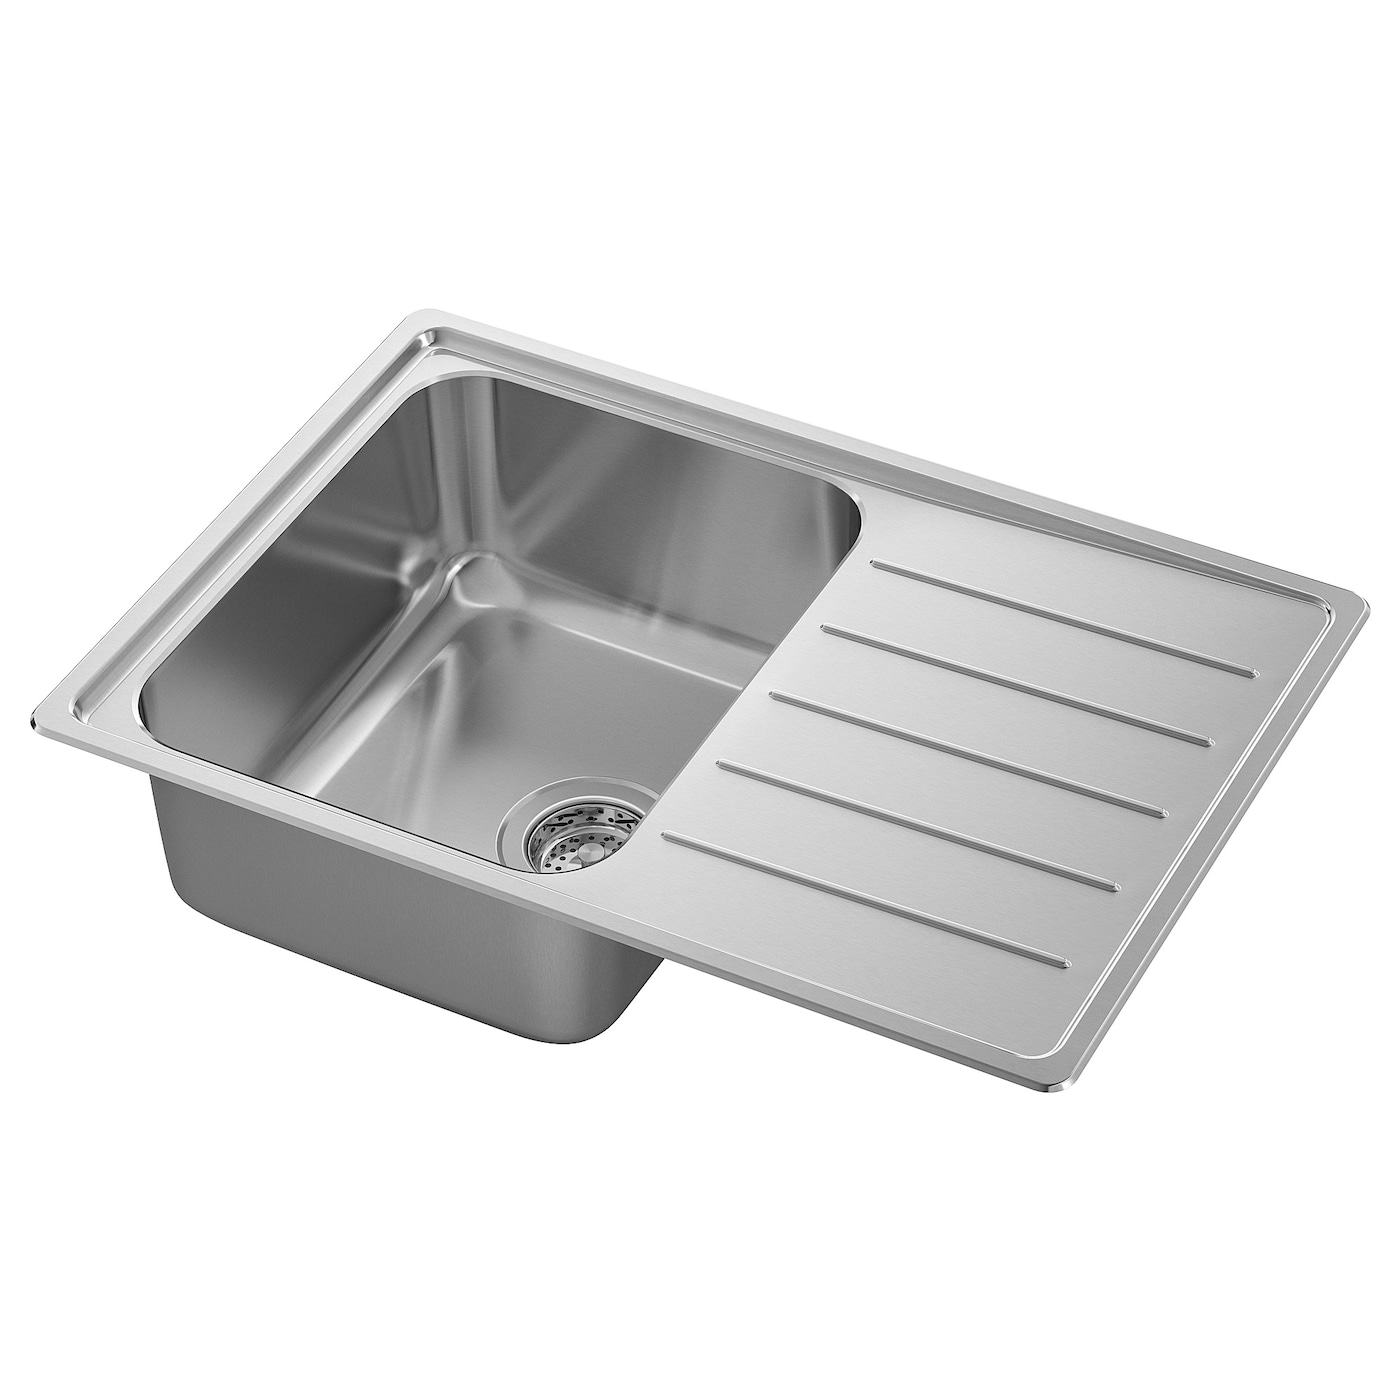 Vattudalen Inset Sink 1 Bowl With Drainboard Stainless Steel